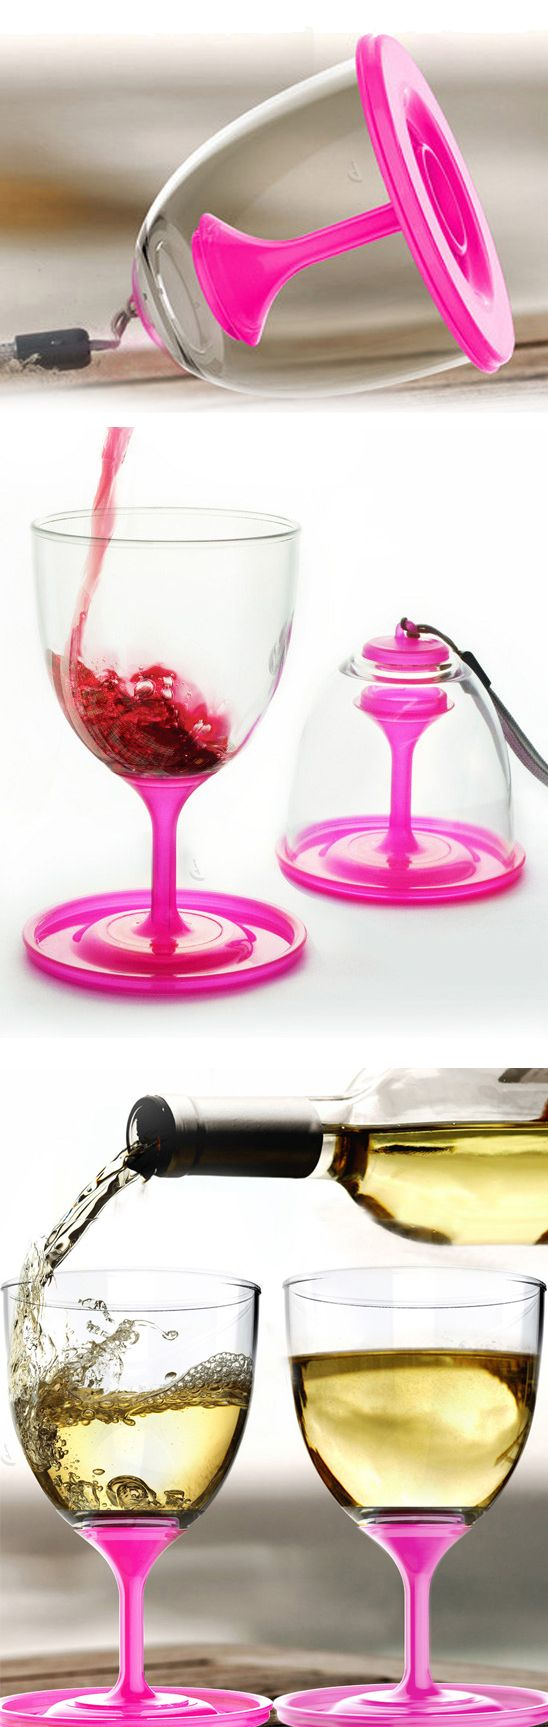 Stack n Go travel wine glass // folds up and stacks for easy storage and carrying - brilliant! #product_design